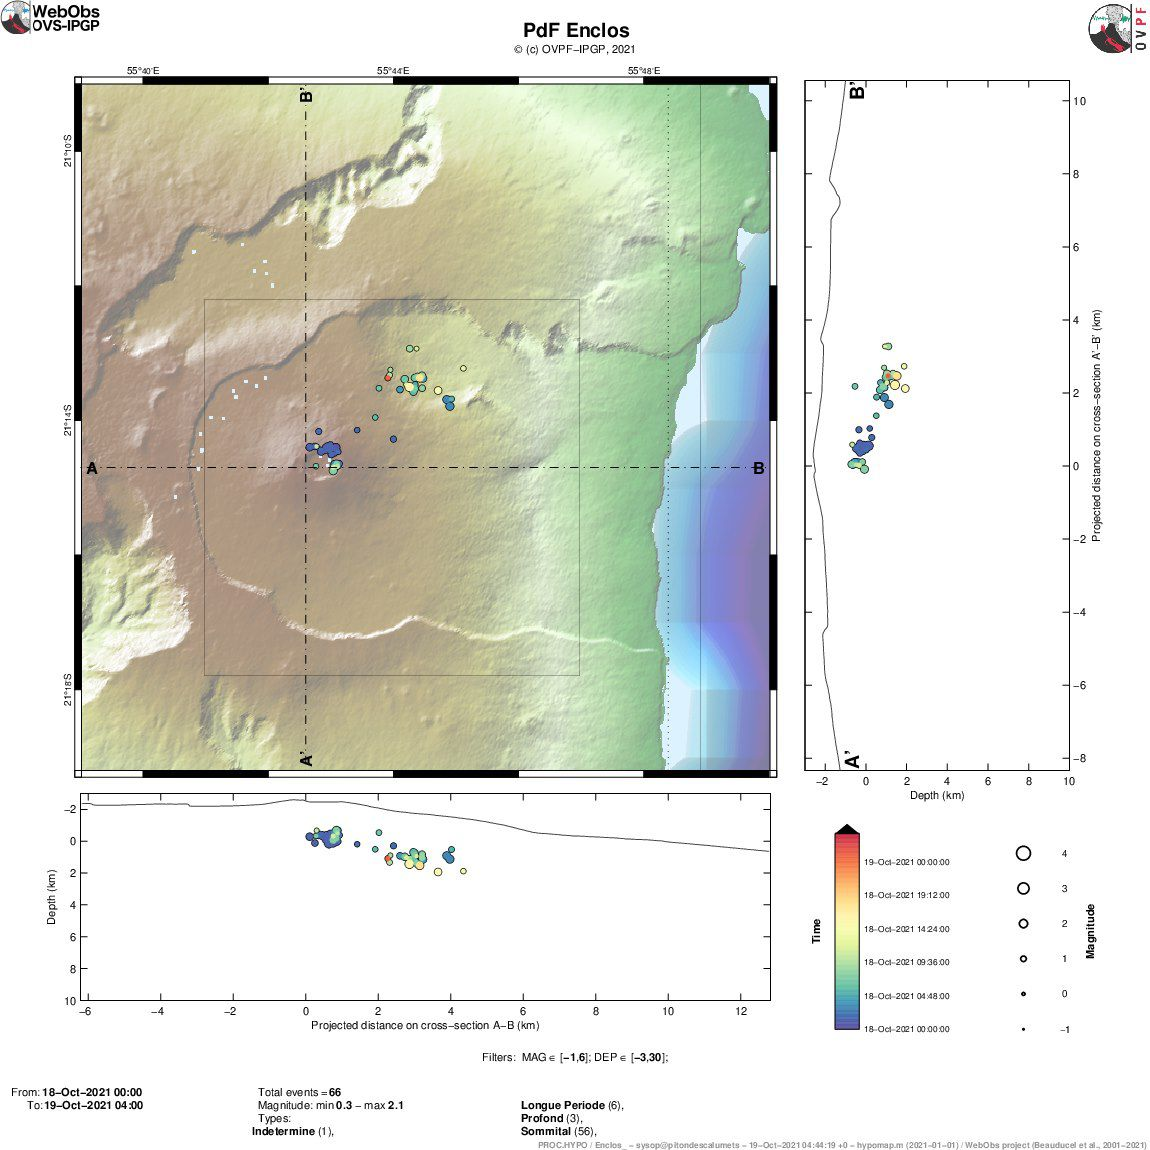 Piton de La Fournaise: Location map (epicenters) and north-south and east-west sections (showing the location in depth, hypocenters) of the earthquakes recorded and located by the OVPF-IPGP between 10/18/2021 and 19 / 10/2021 8h under the Piton de la Fournaise massif. Only a few characteristic earthquakes have been located at this time (© OVPF-IPGP)